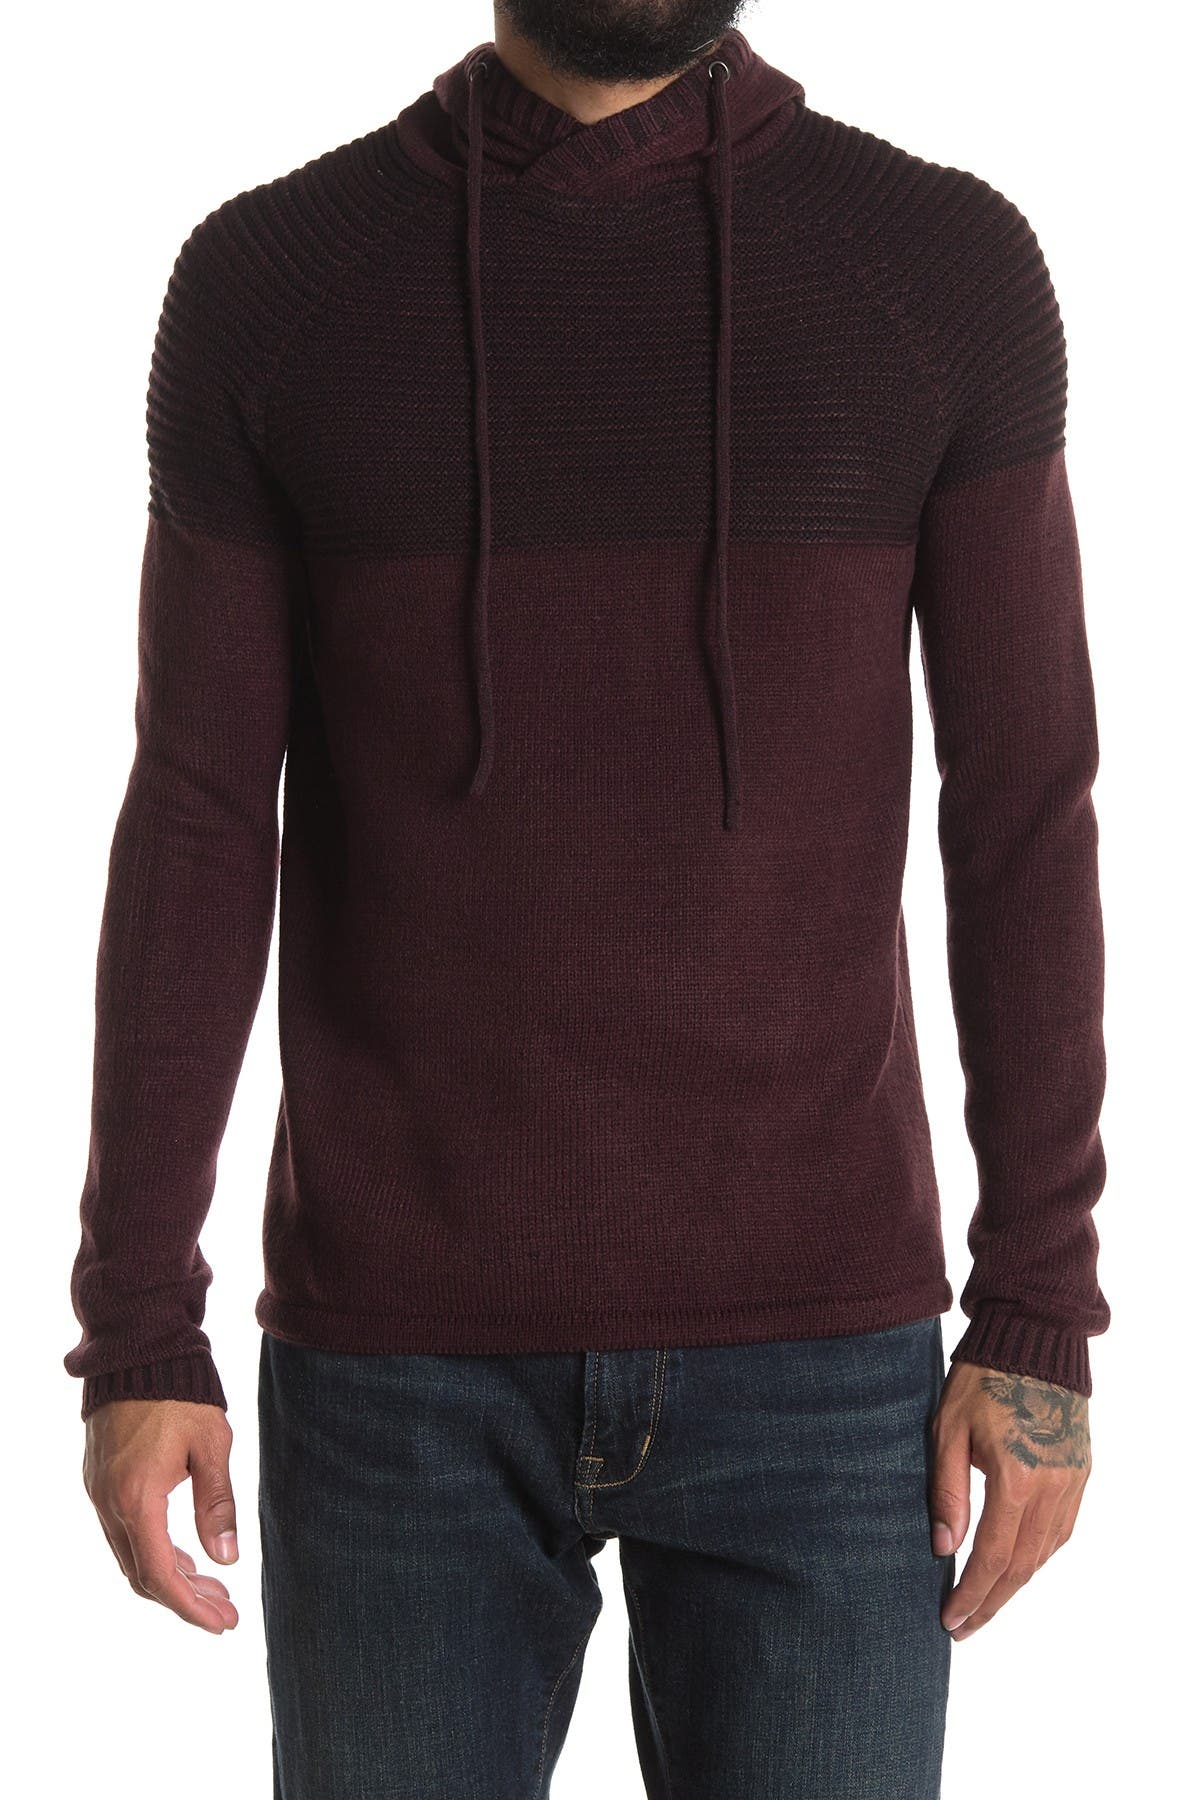 Image of HEDGE Plated Yarn Colorblock Hoodie